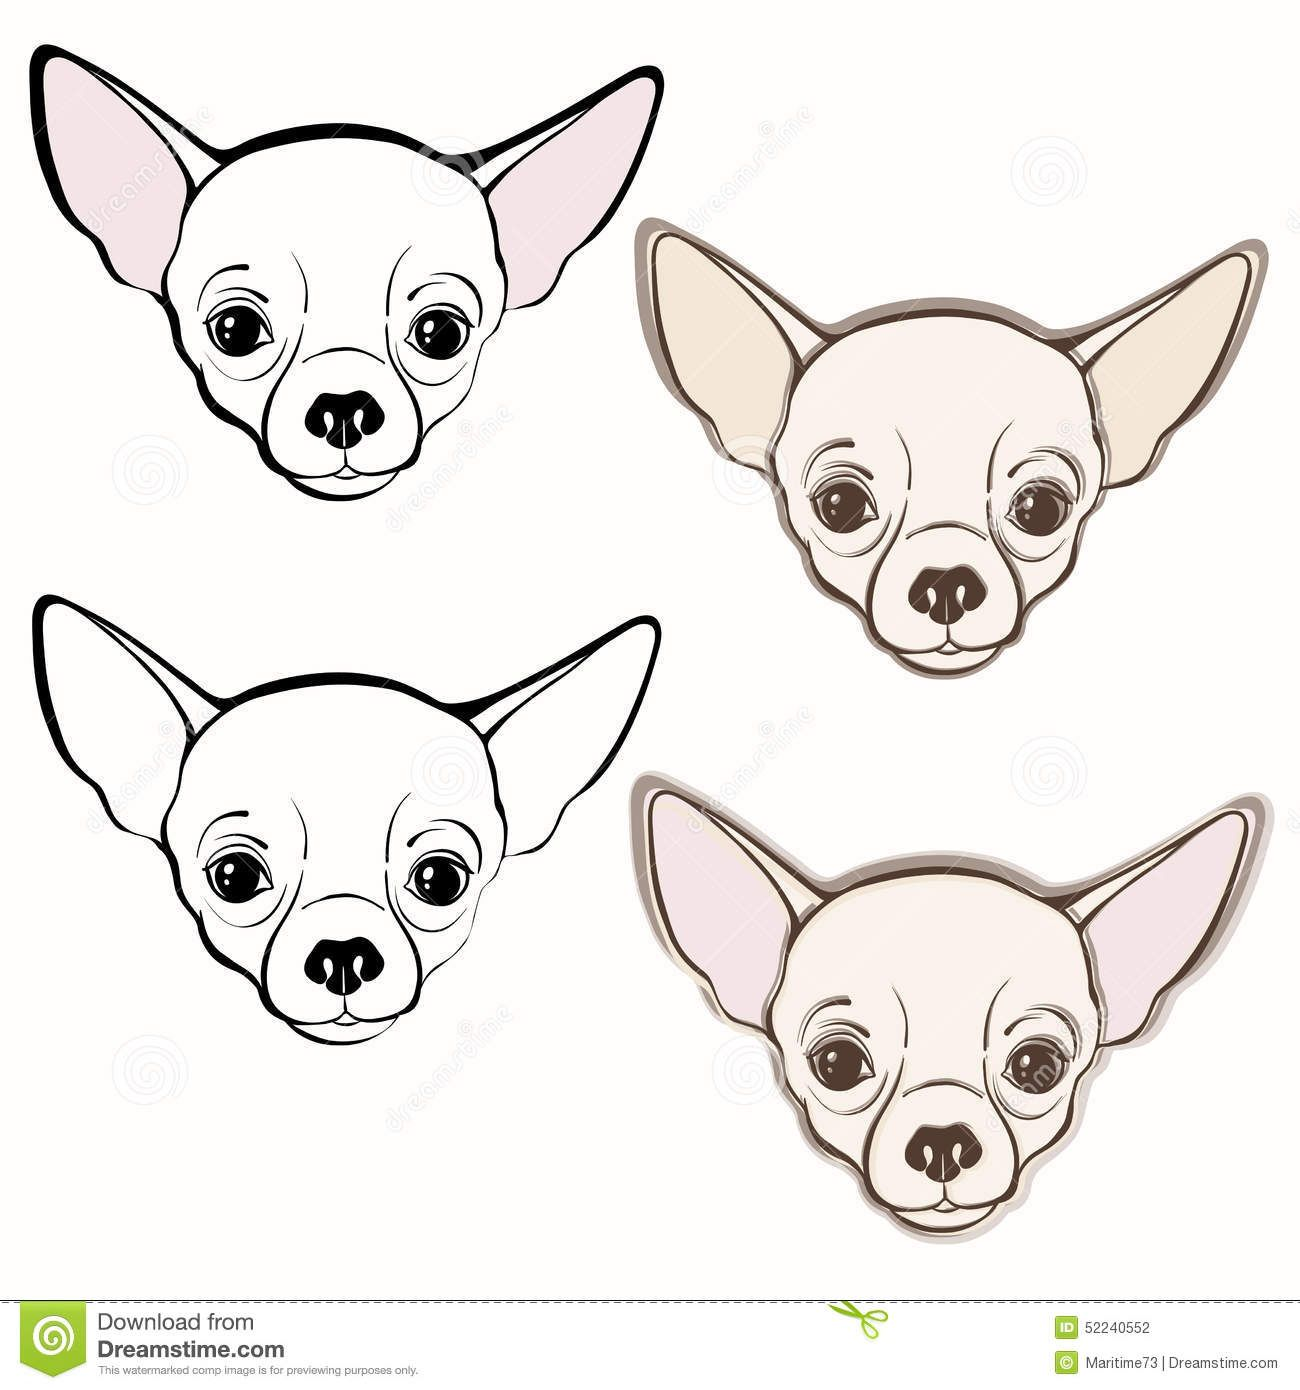 Vector Set Of Chihuahua S Face Hand Drawn Illustration 30 Ways To Draw Dogs How To Draw A Chihuahua With Pict Chihuahua Drawing Chihuahua Art Animal Drawings [ 1390 x 1300 Pixel ]